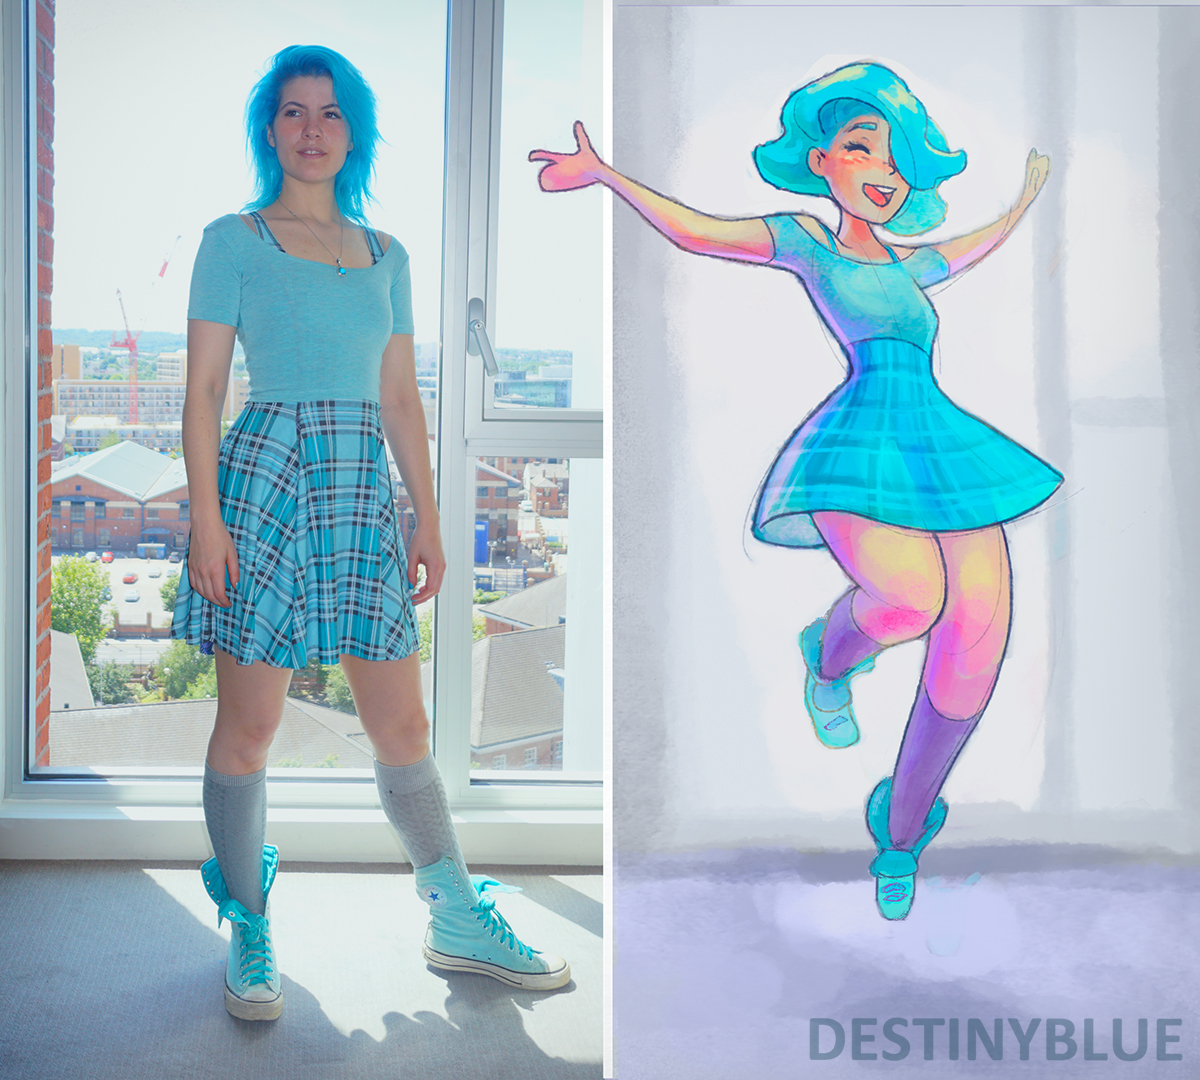 Artist Outfit Of The Day Drawing!